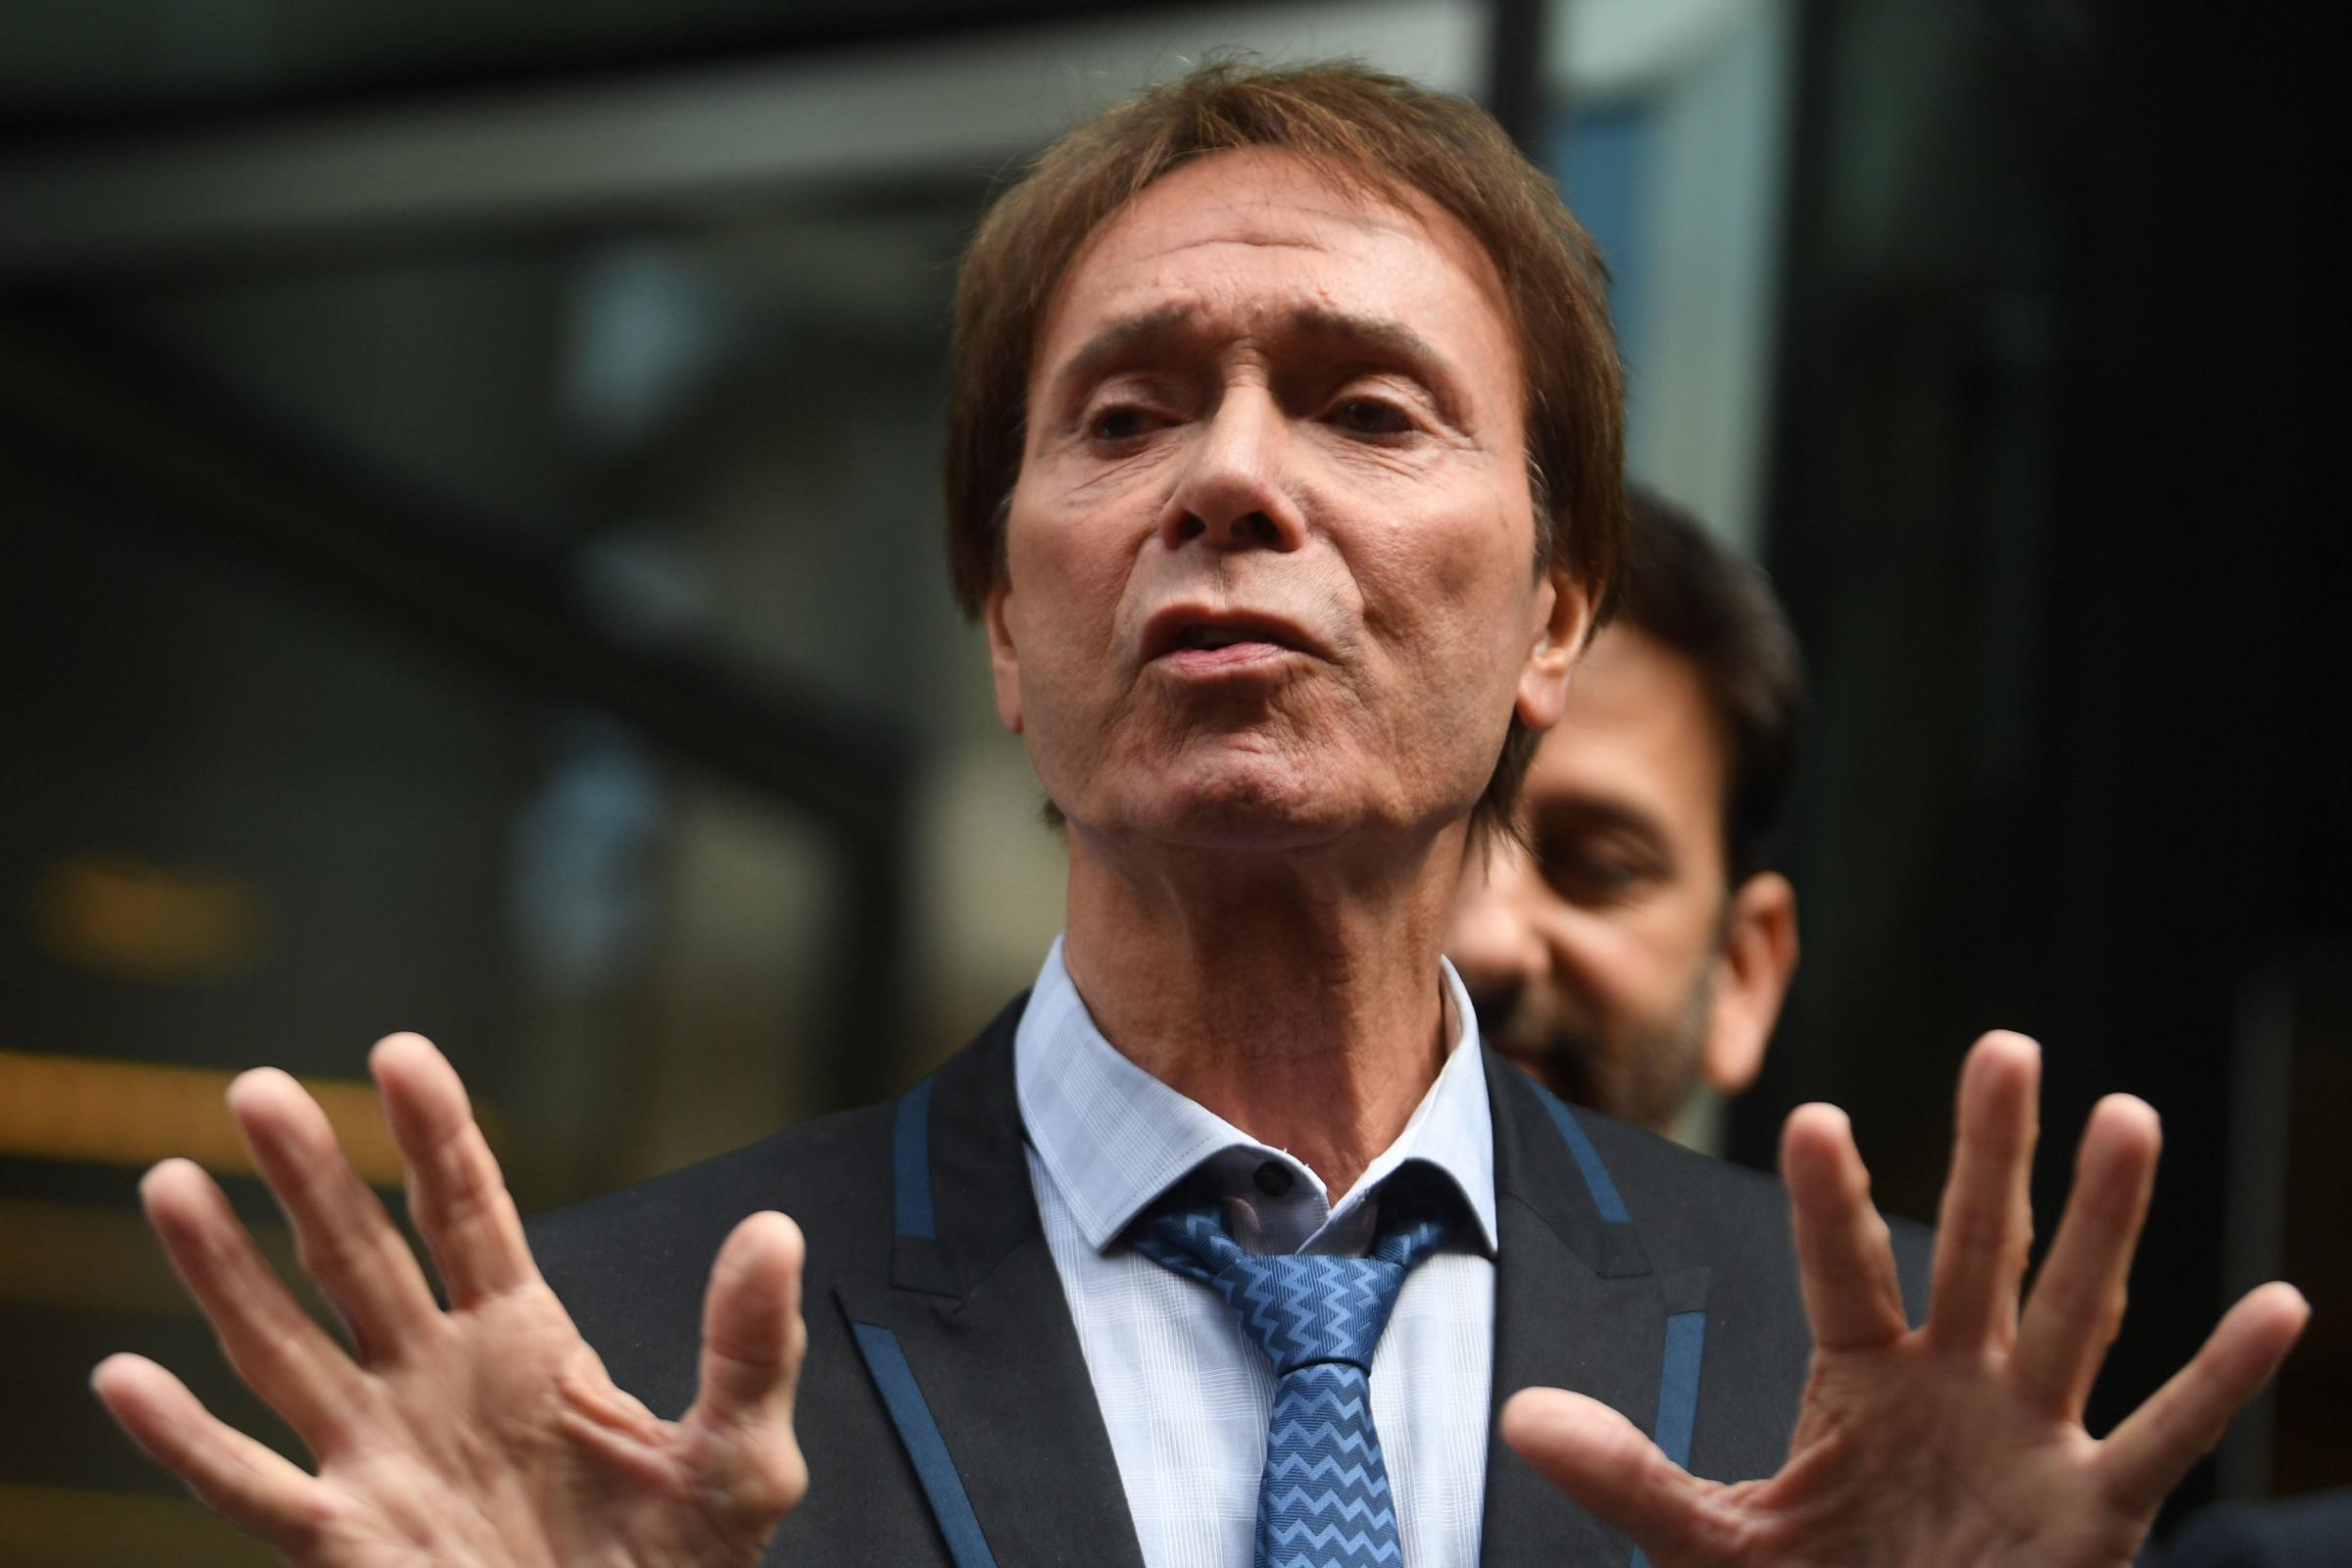 Sir Cliff Richard speaks outside the Rolls Building in London after the ruling